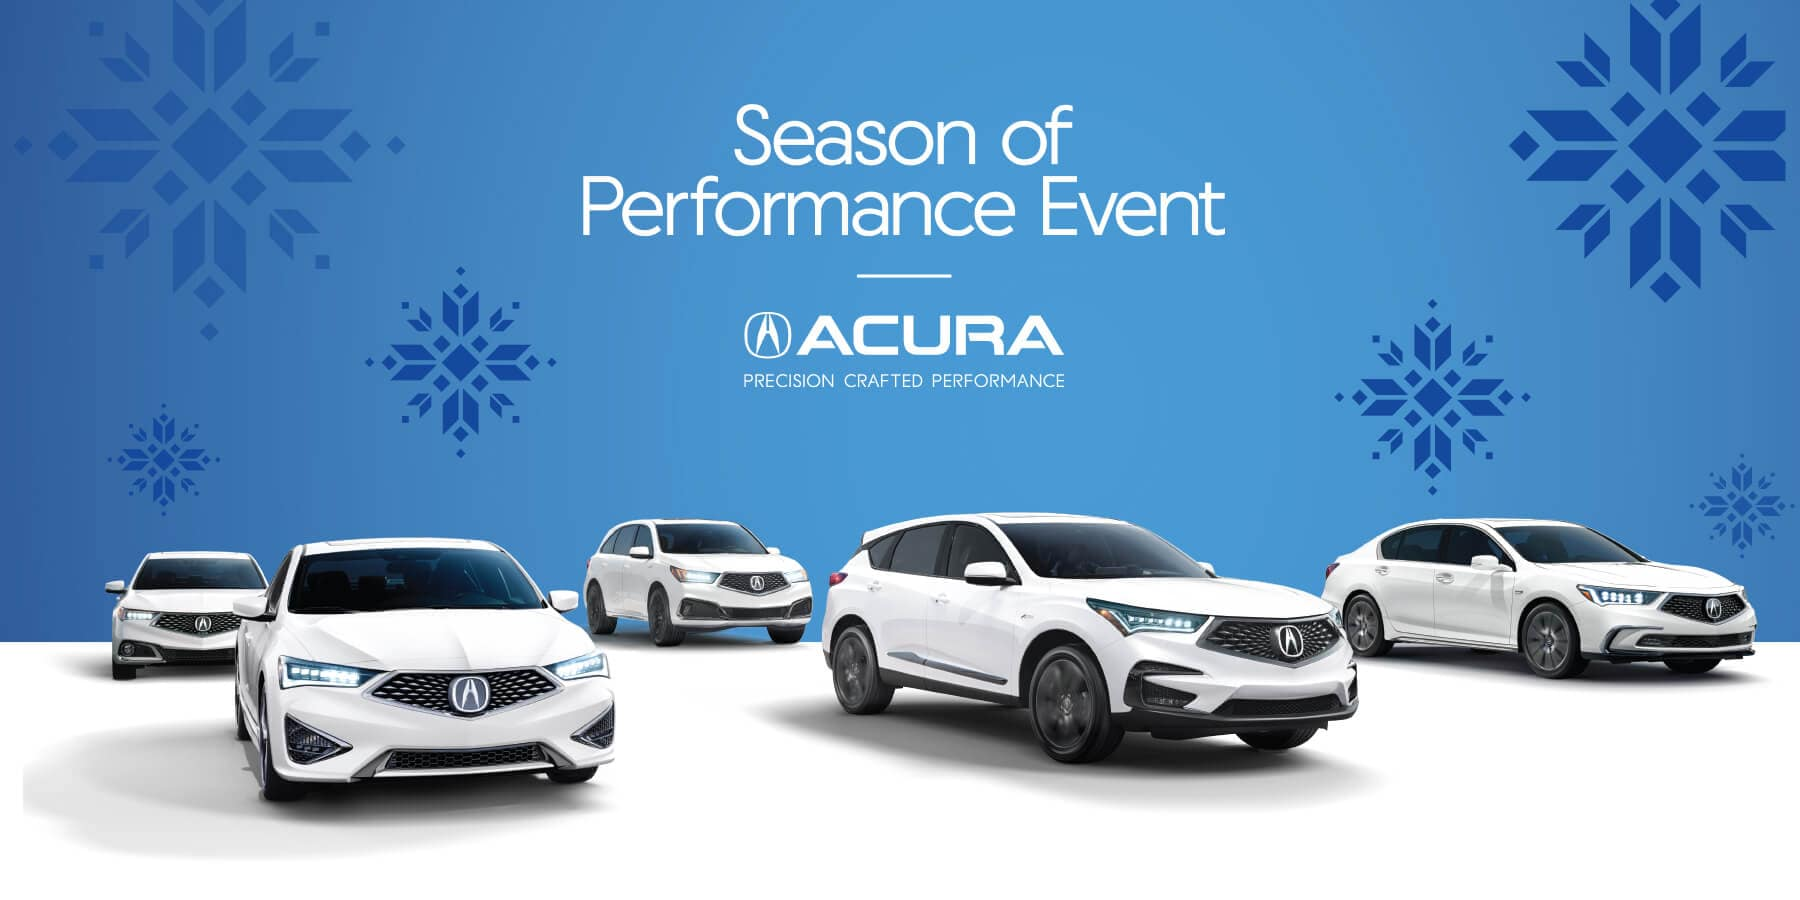 2019 Acura Season of Performance Event at Your Midwest Acura Dealers